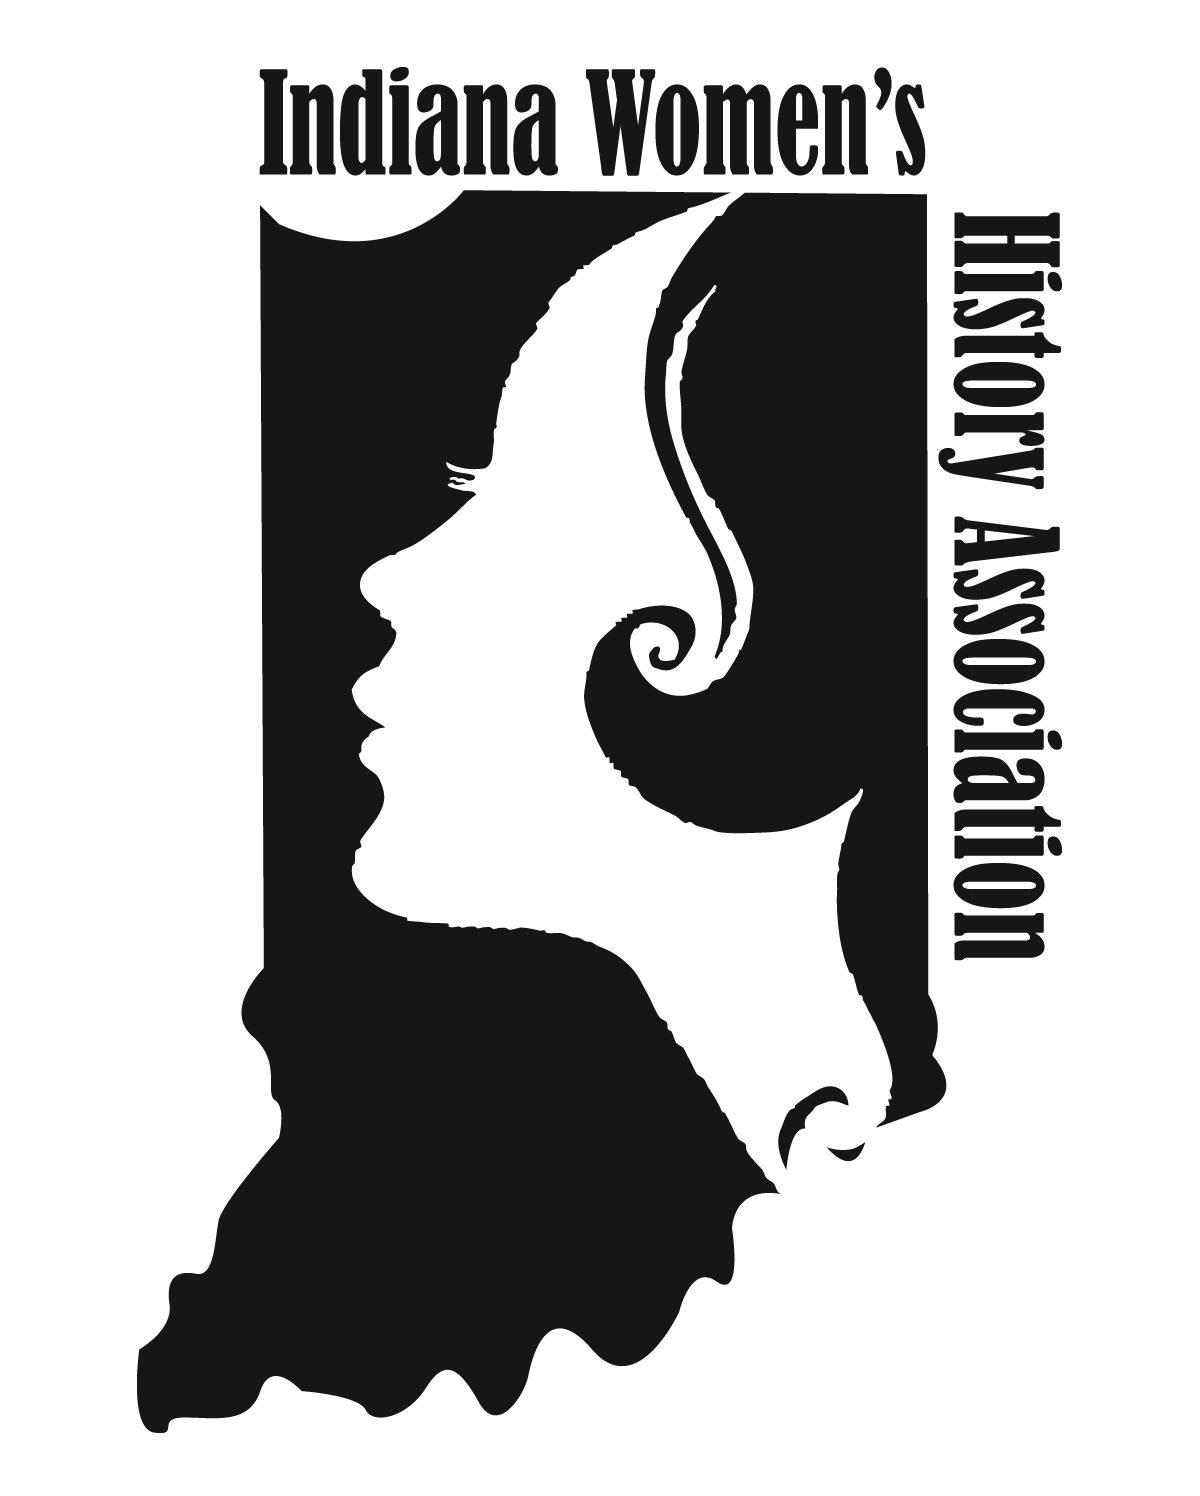 Indiana Women's History Association